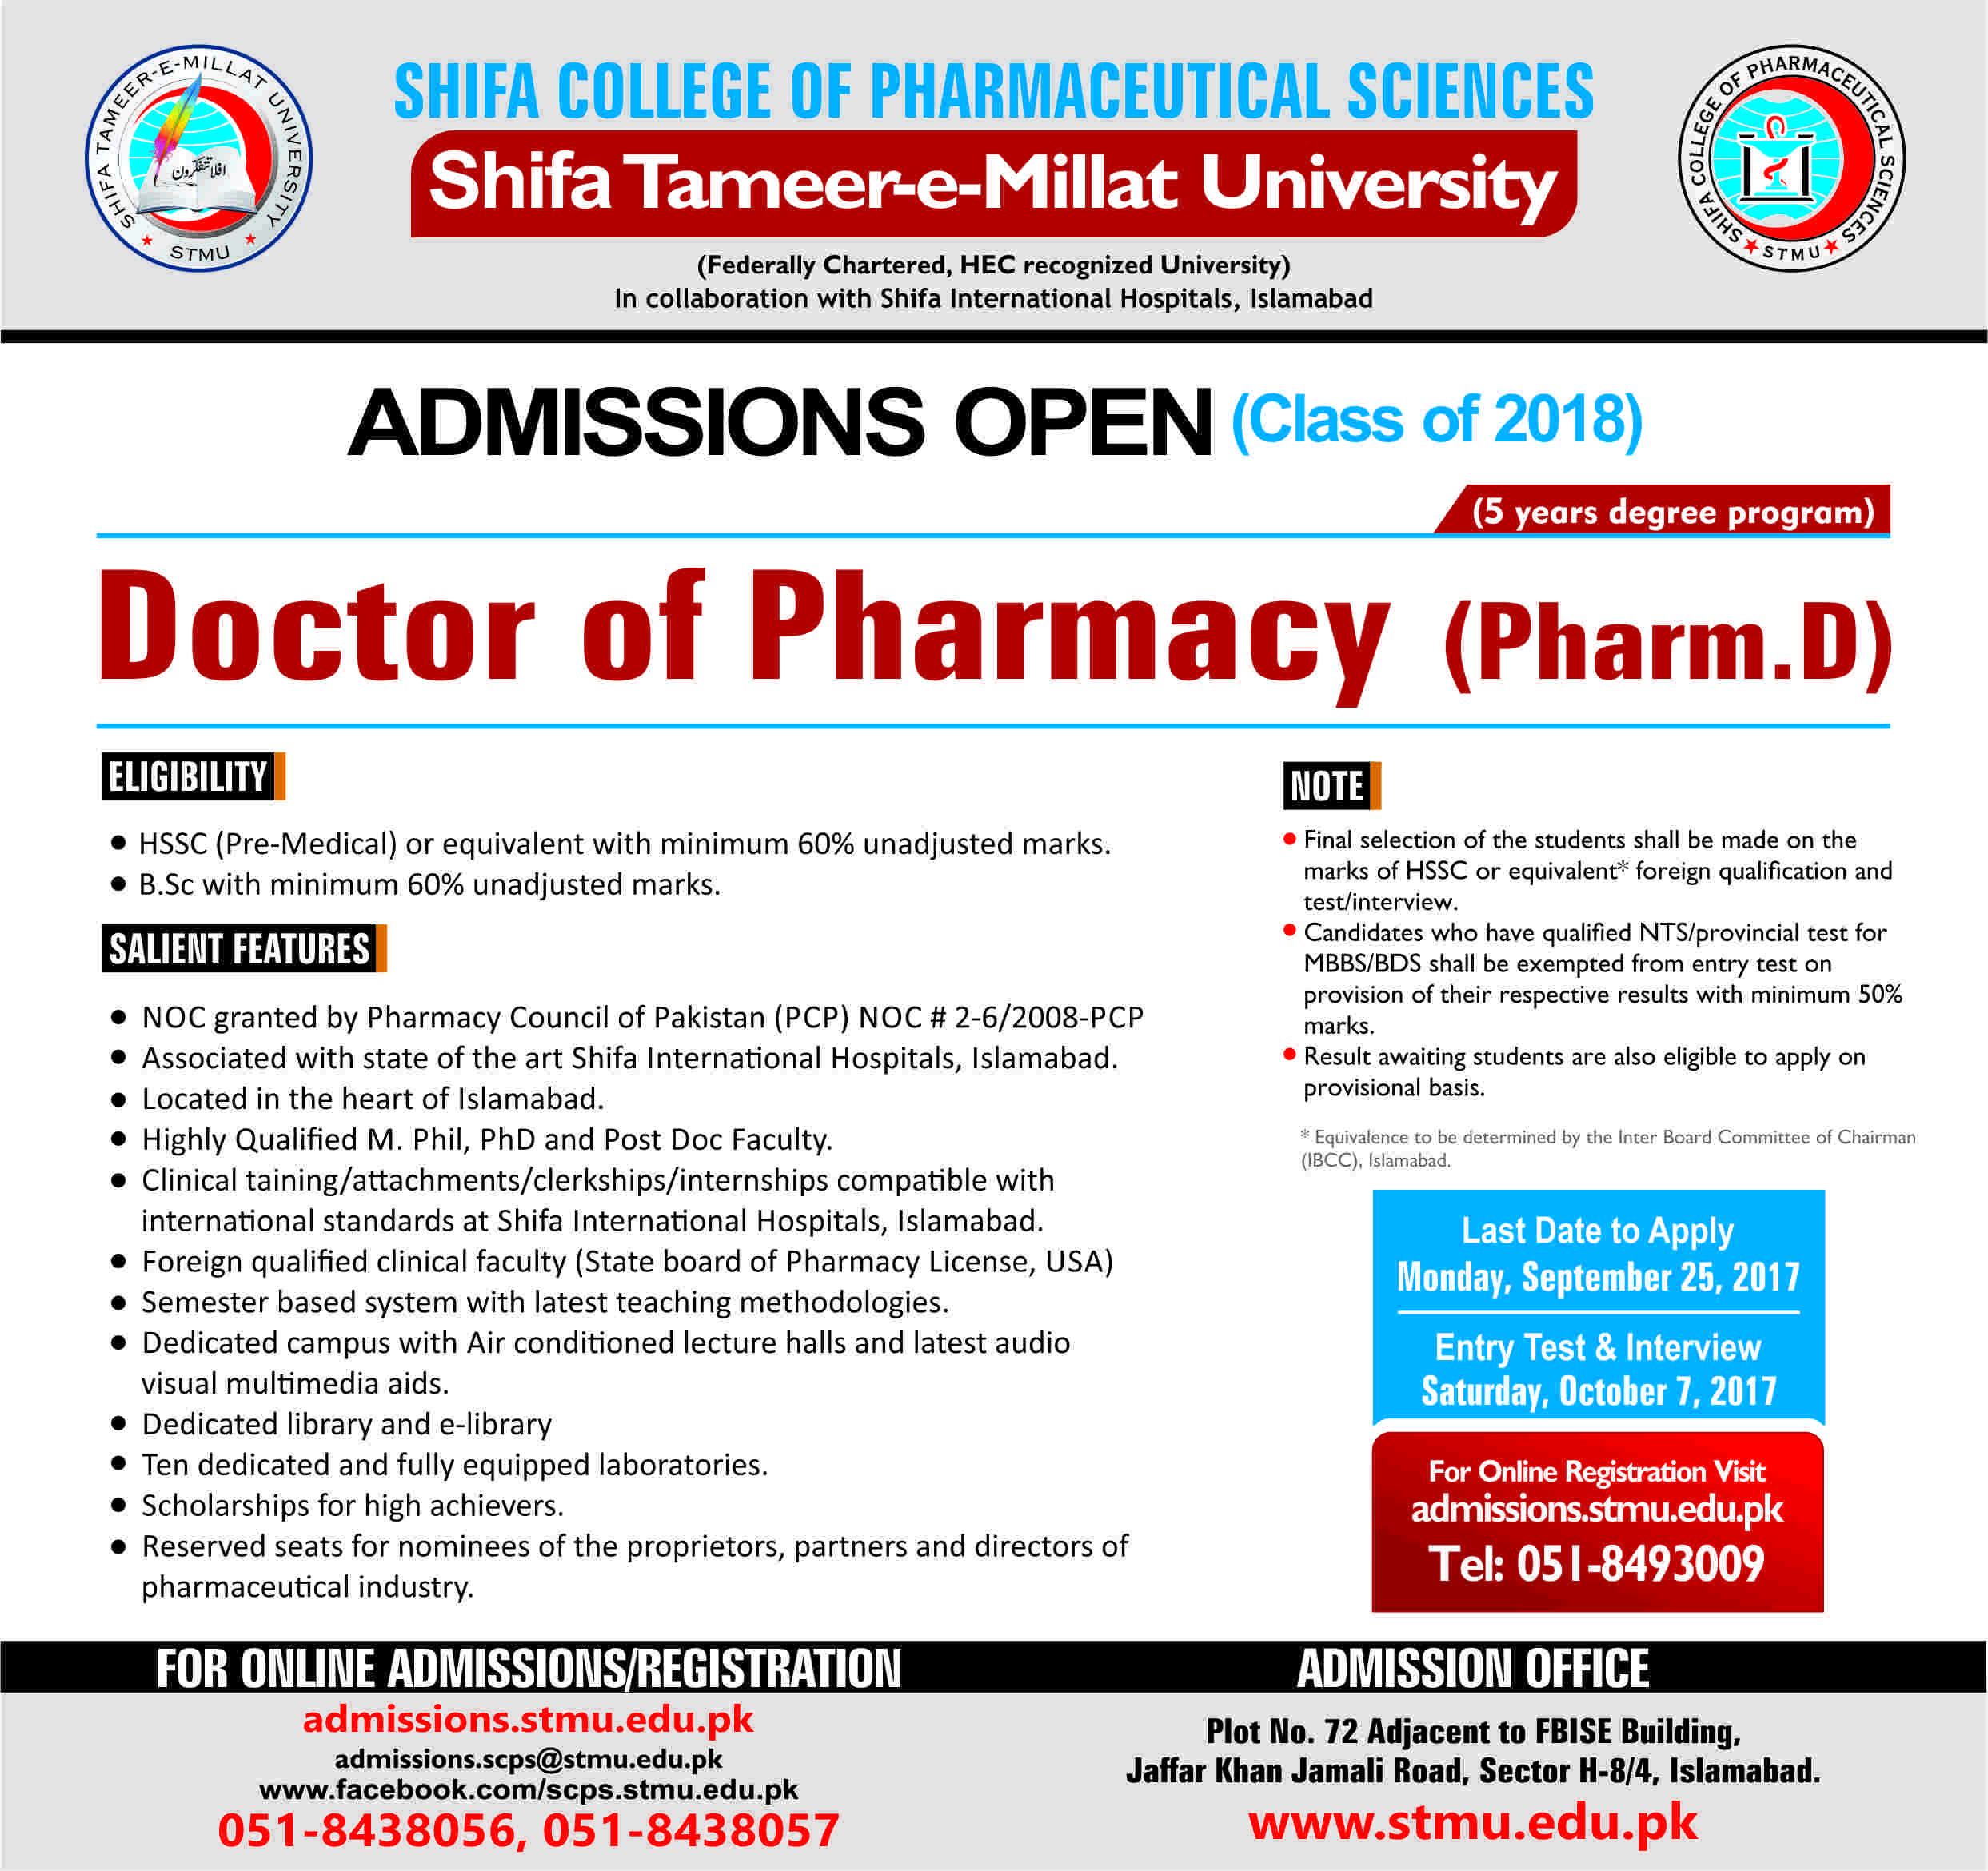 Shifa College of Pharmaceutical Sciences Shifa Tameer-e-Millat University – Admissions Open 2017